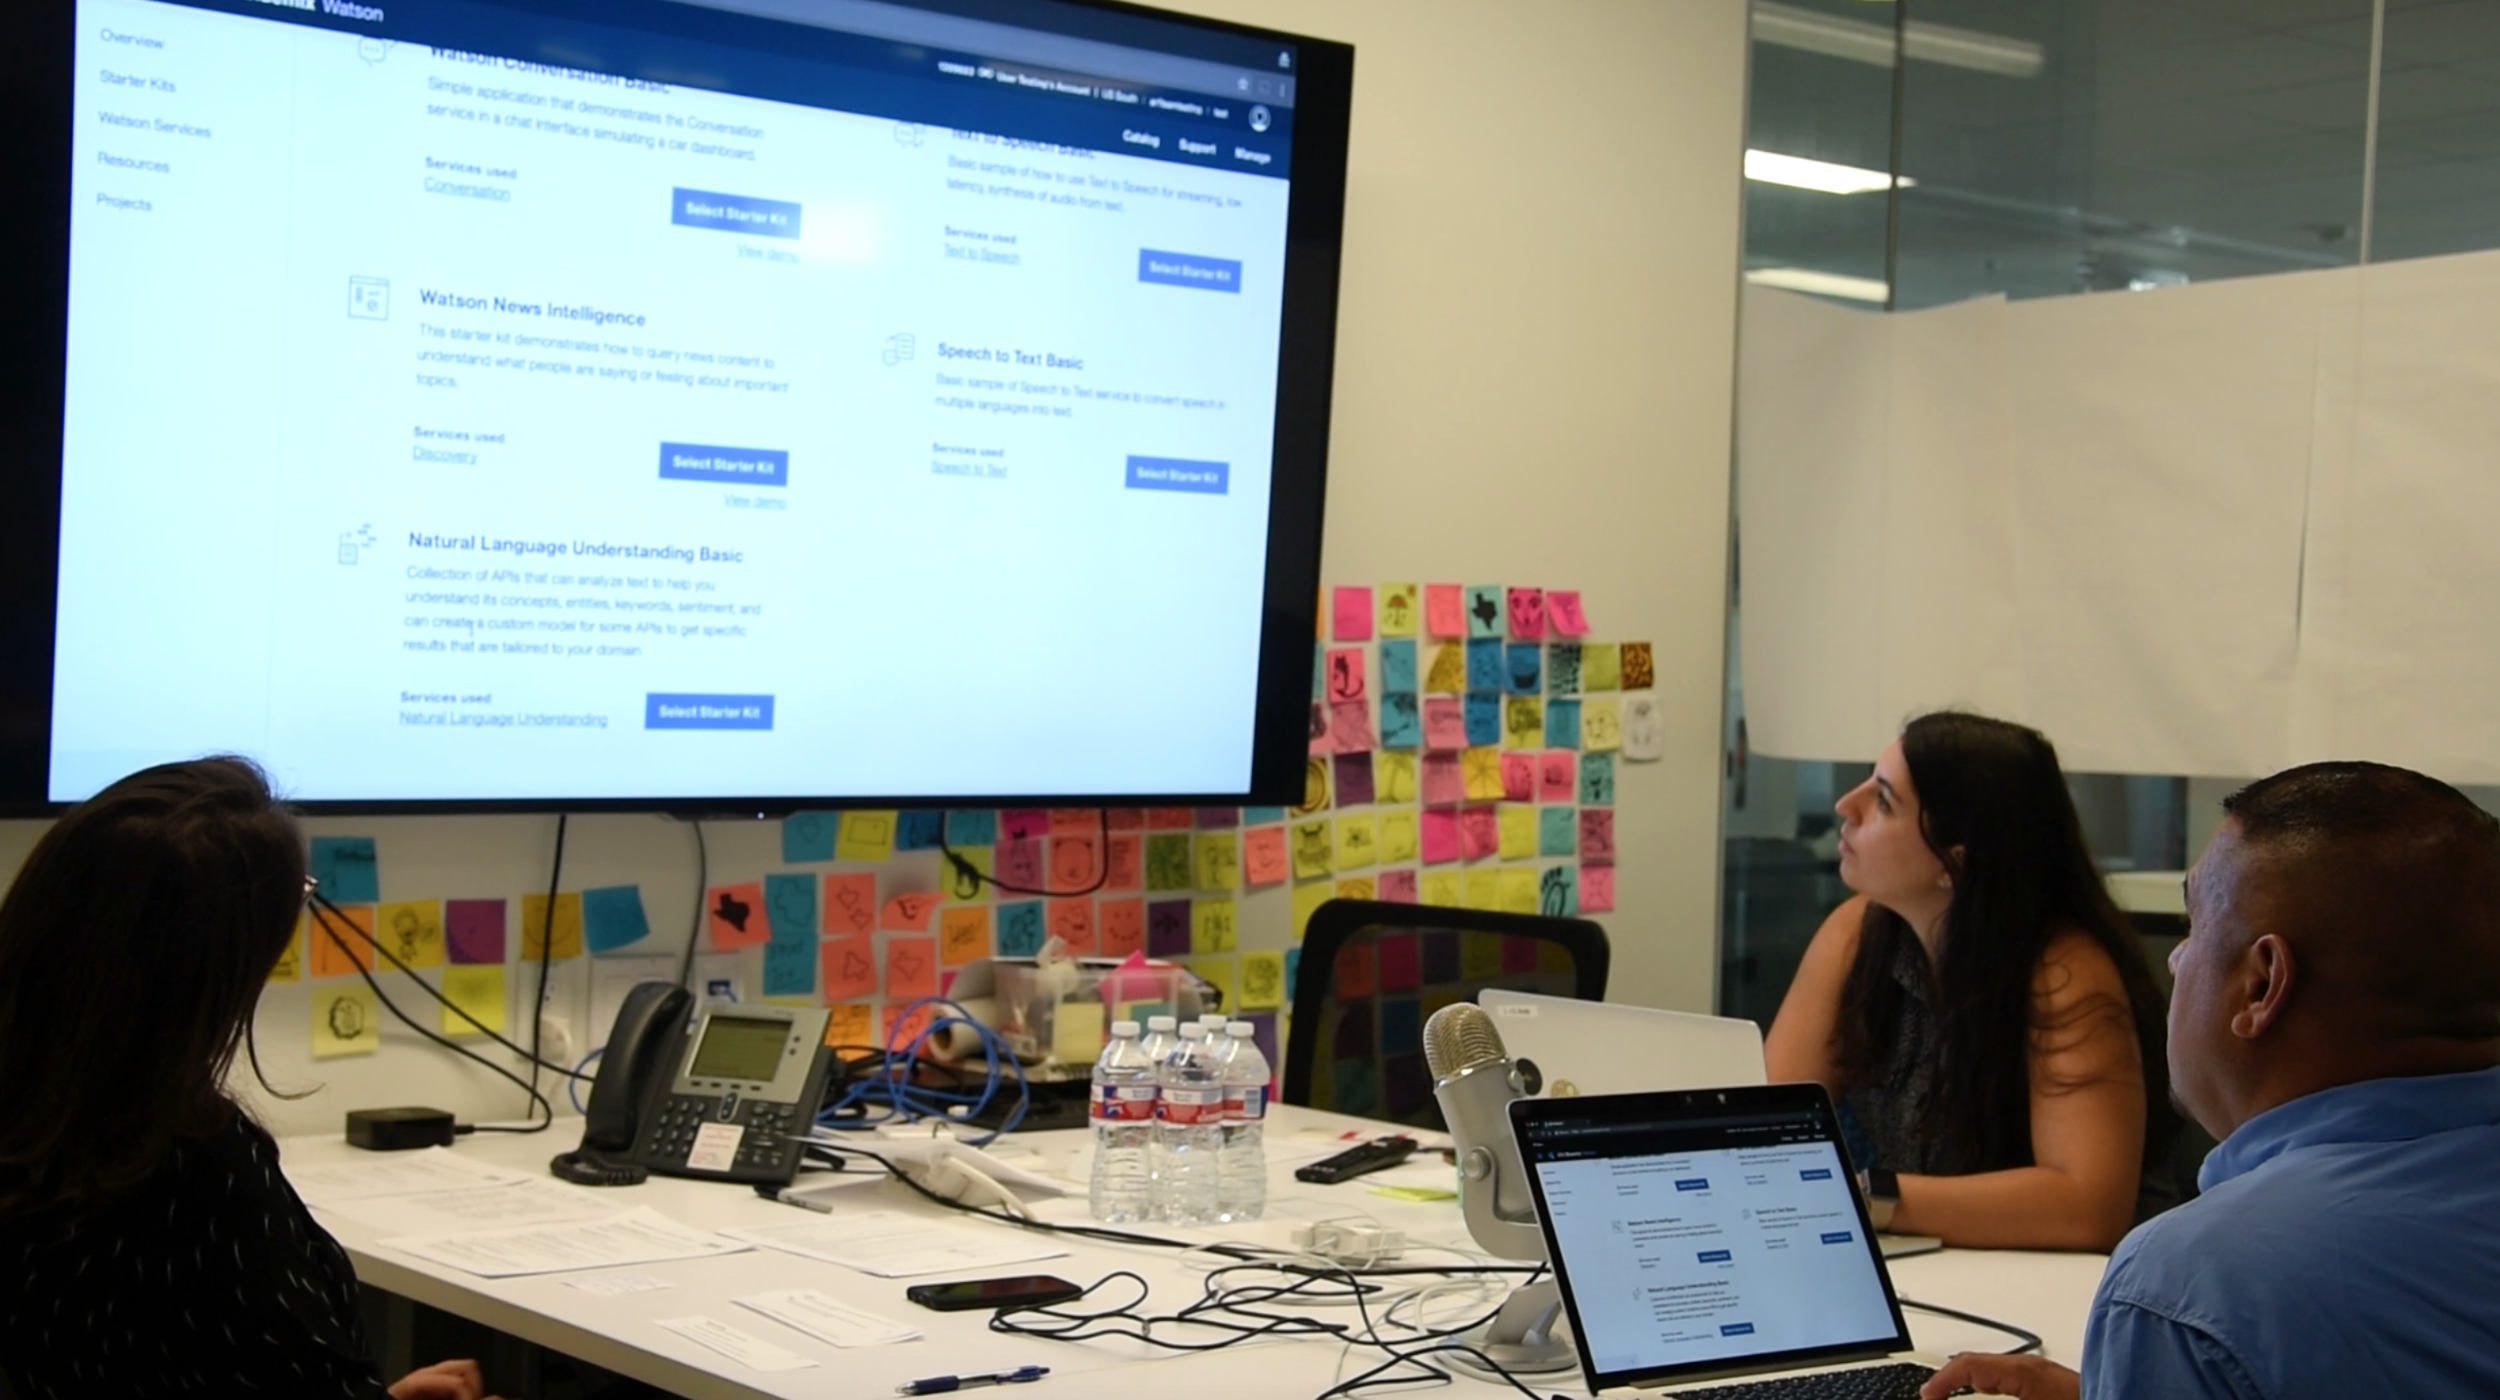 Conducting a user testing session, August 2017